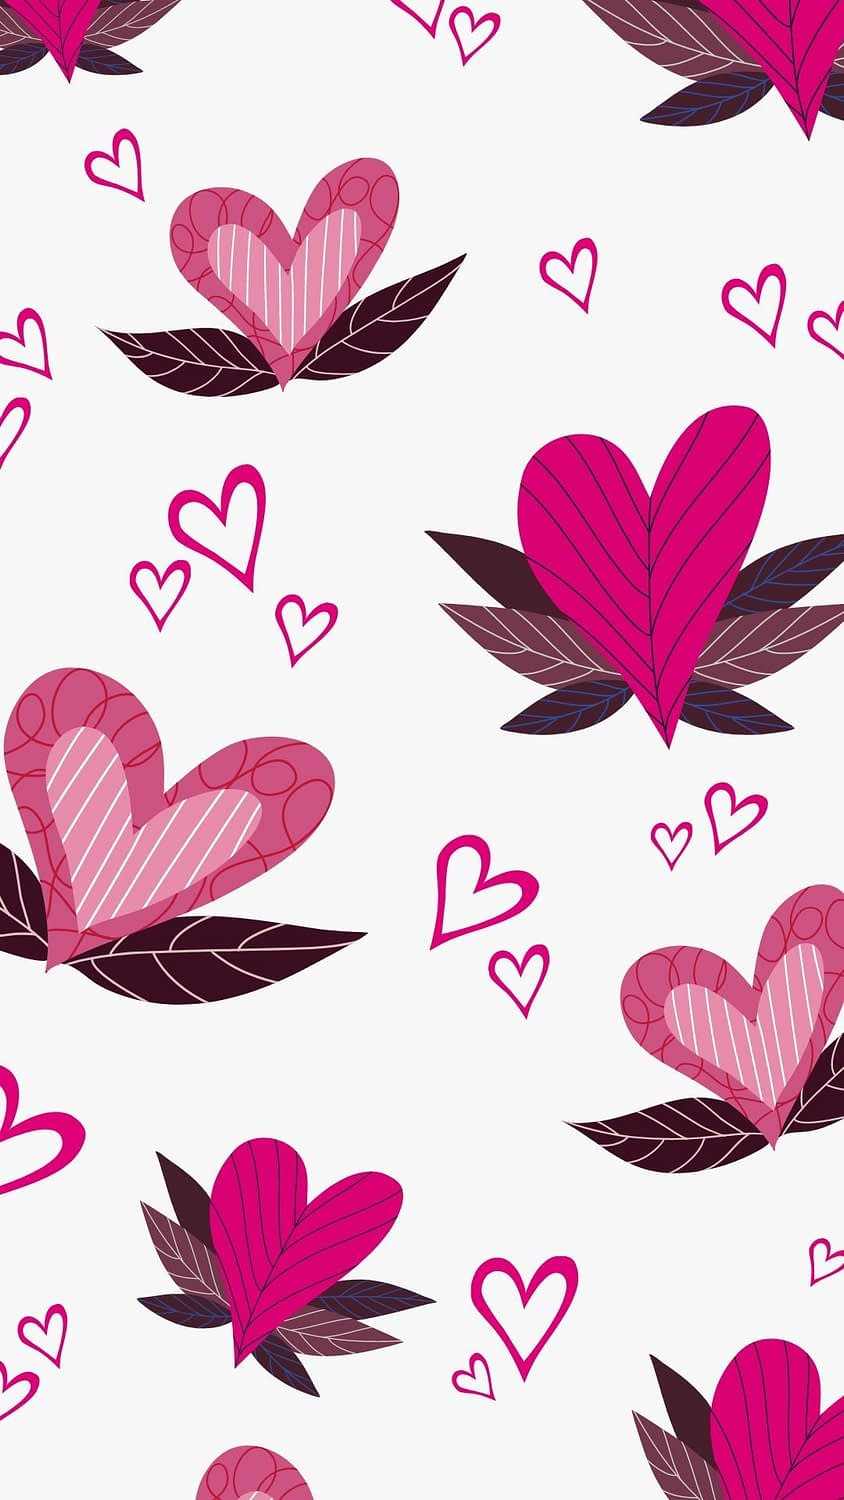 Grab these adorable Valentine's iPhone Backgrounds and Best Valentines Day Wallpaper for February or anytime you have Love on Your Mind!